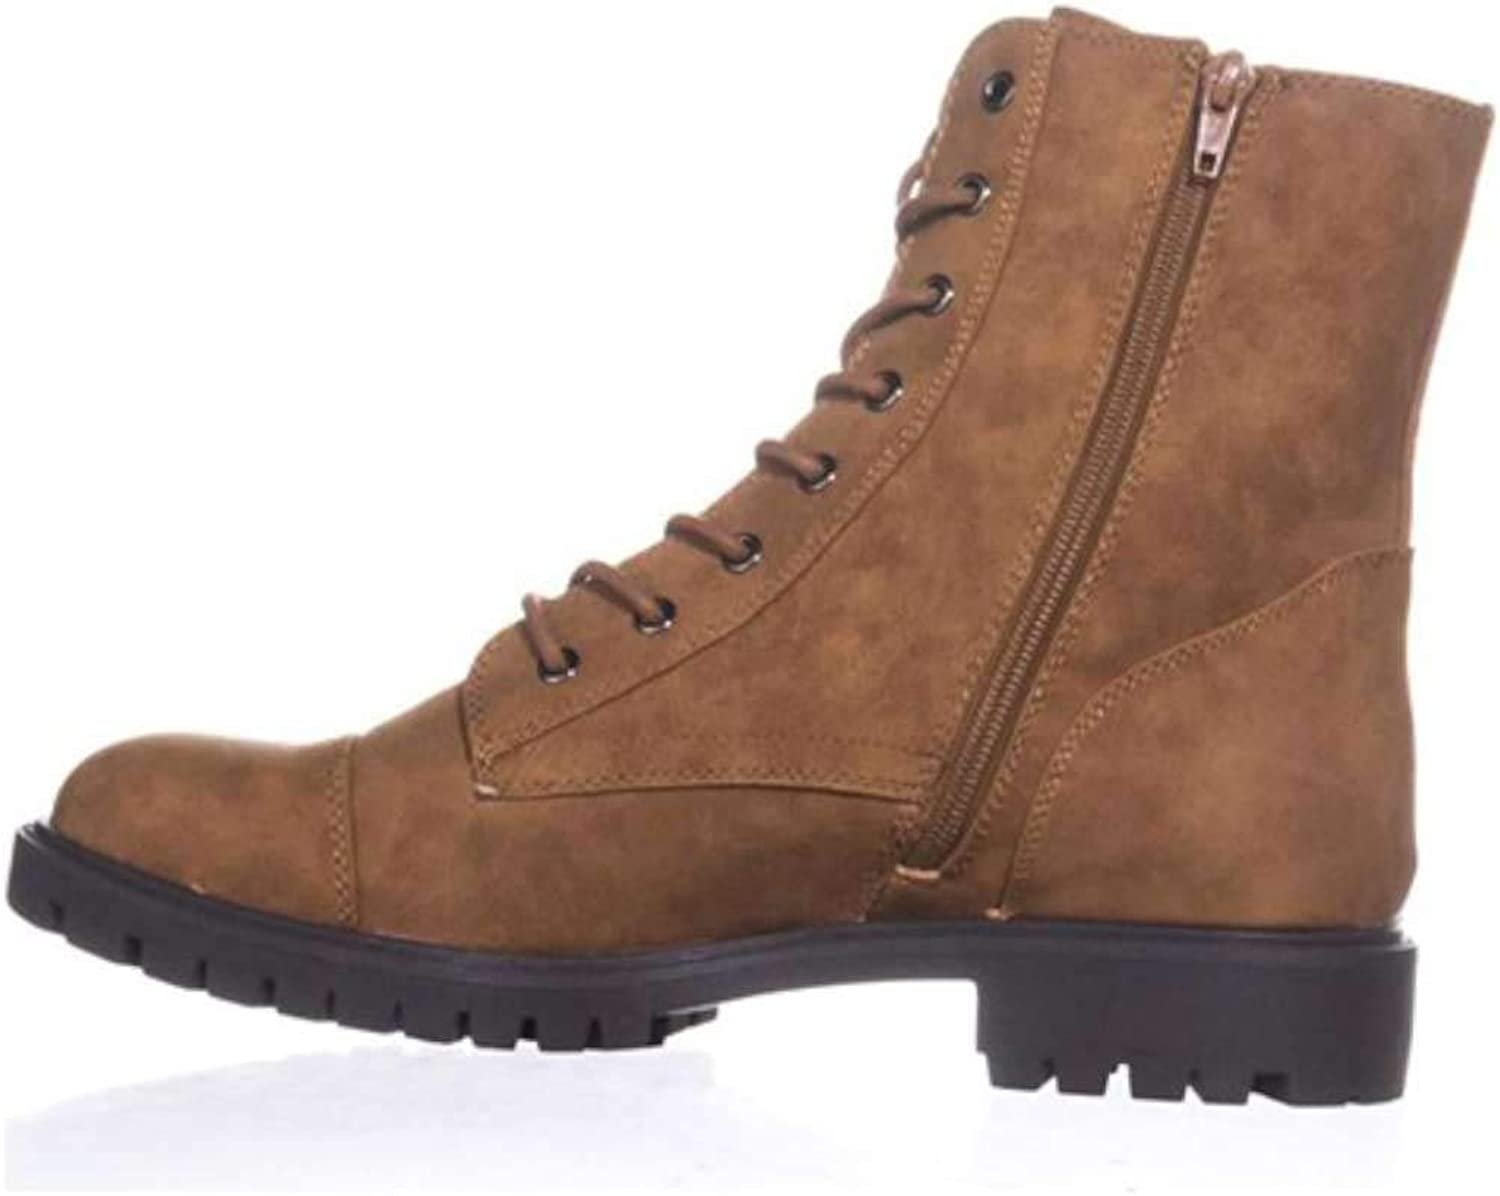 G By Guess Womens Peeder Faux Leather Lace-Up Combat Boots Brown 5 Medium (B,M)